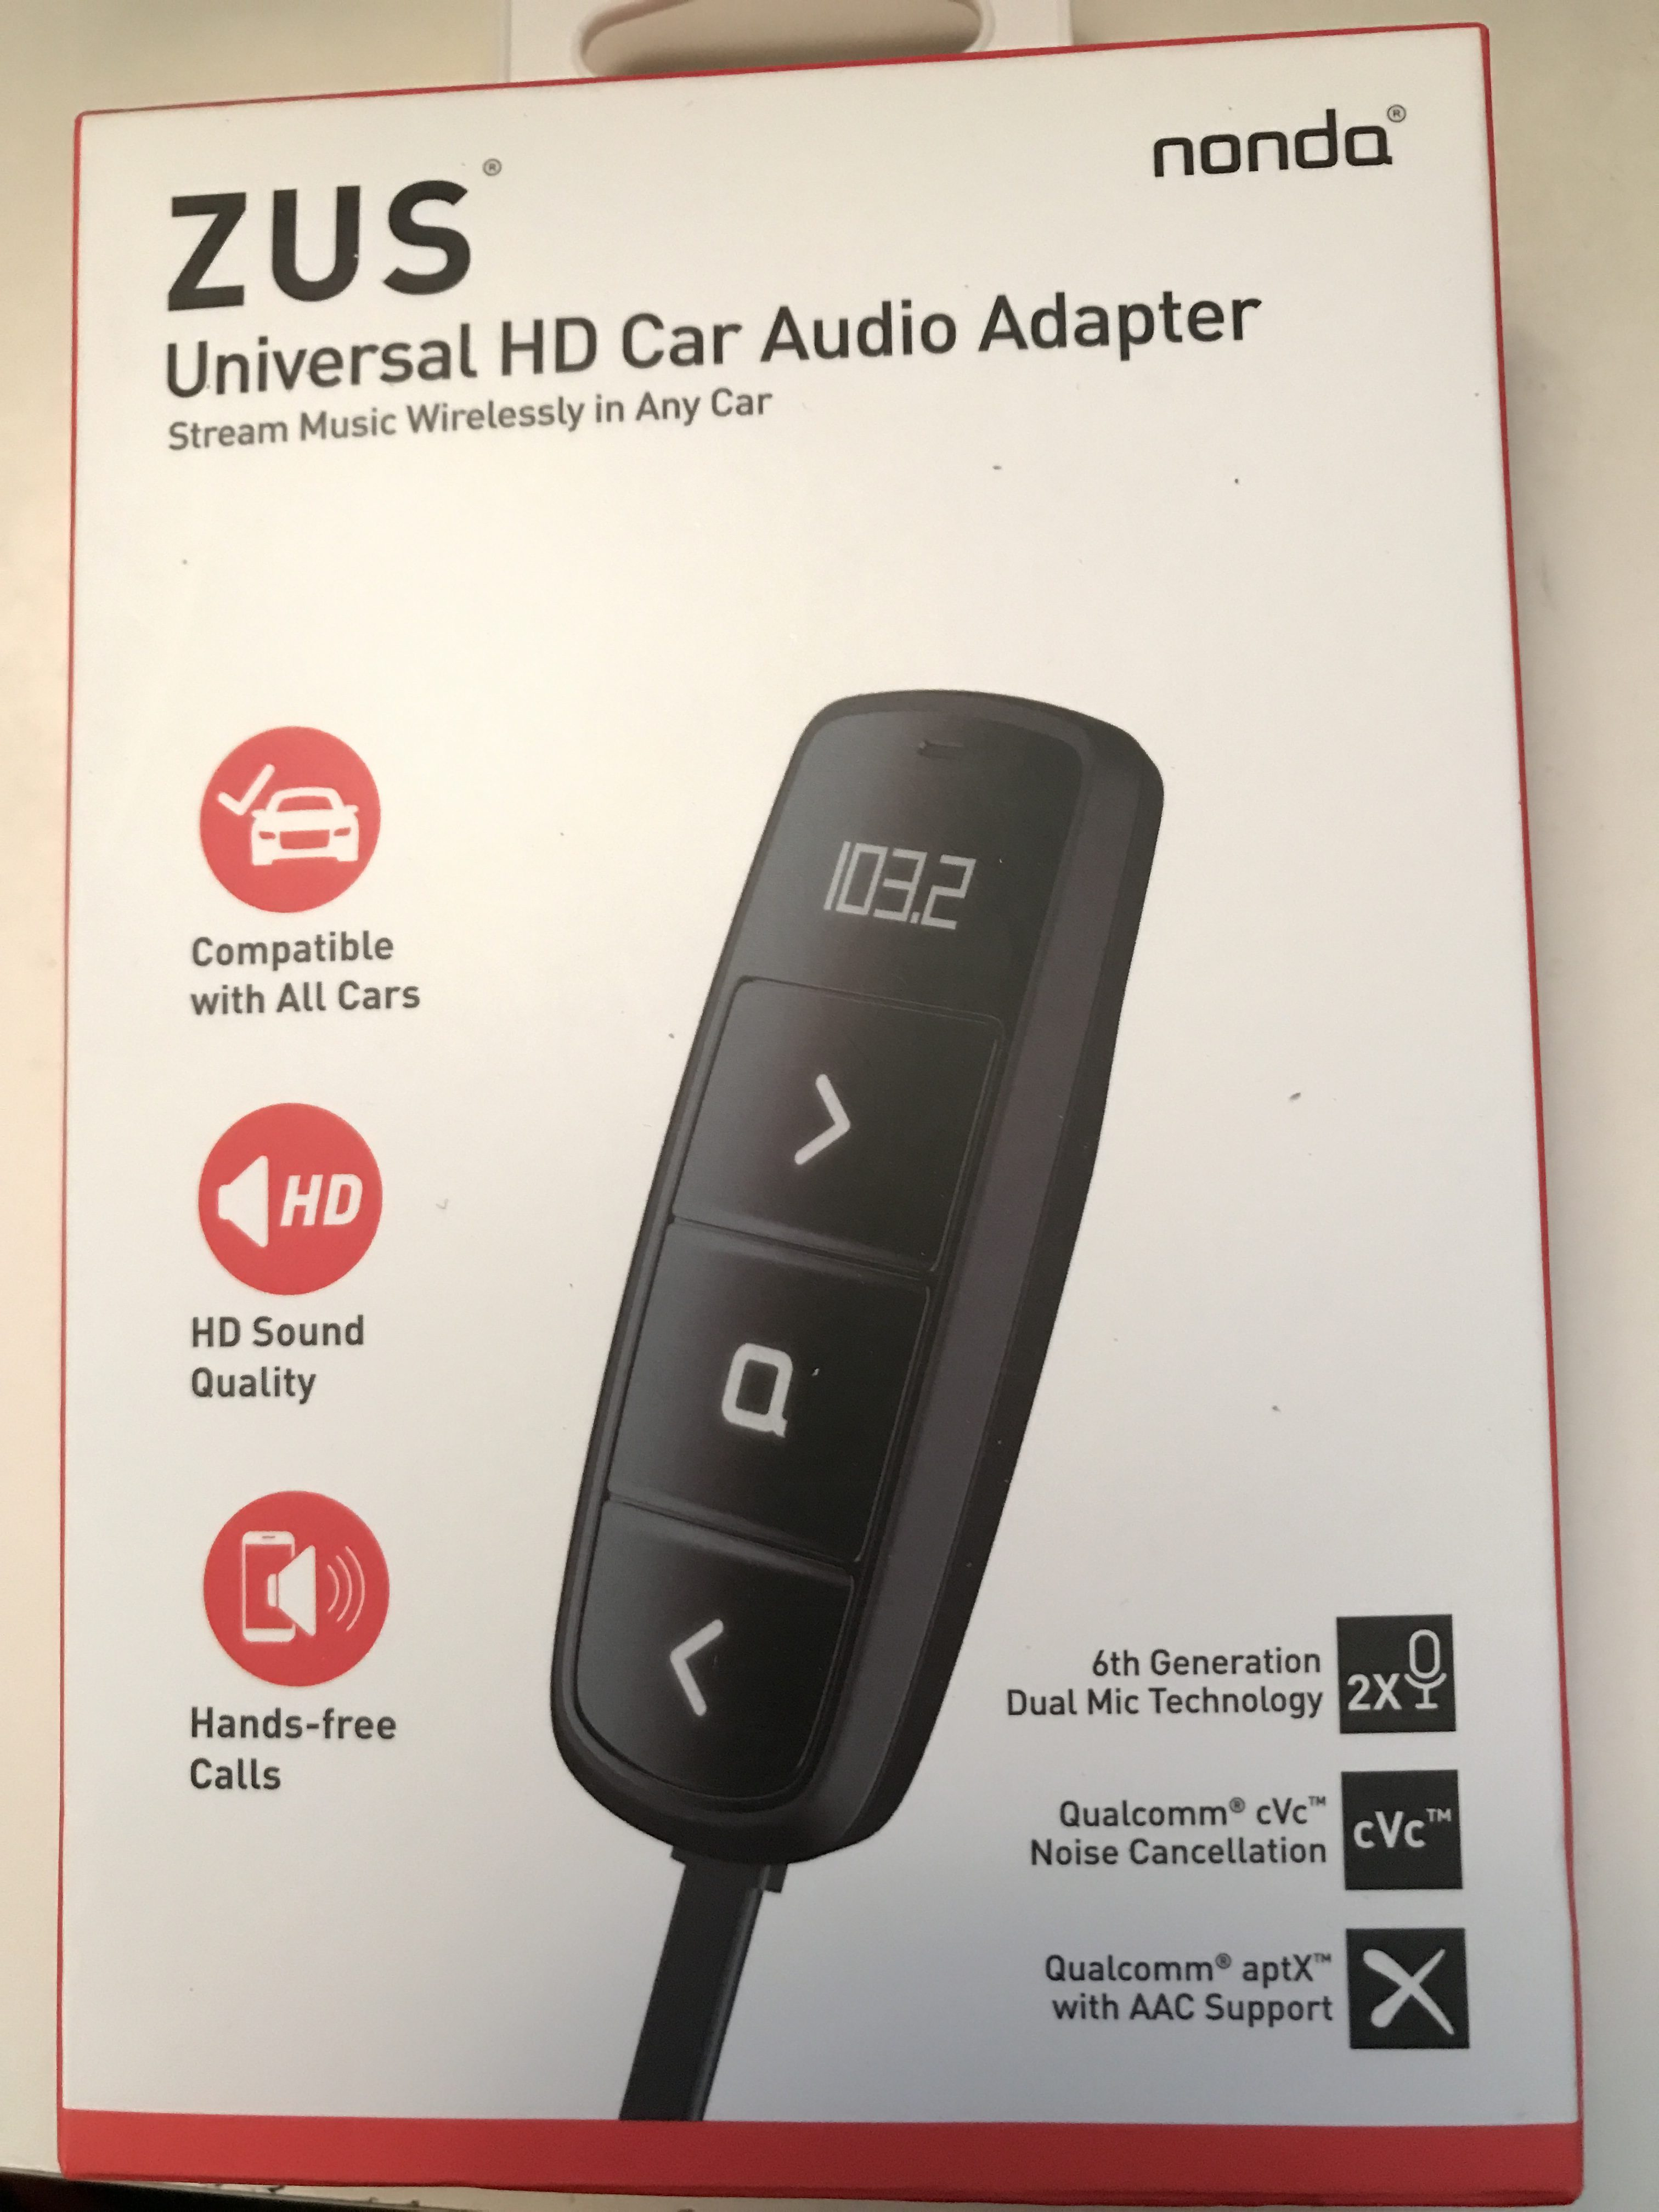 Giveaway Zus Universal Hd Car Audio Adapter From Nondainc Gay Nyc Dad